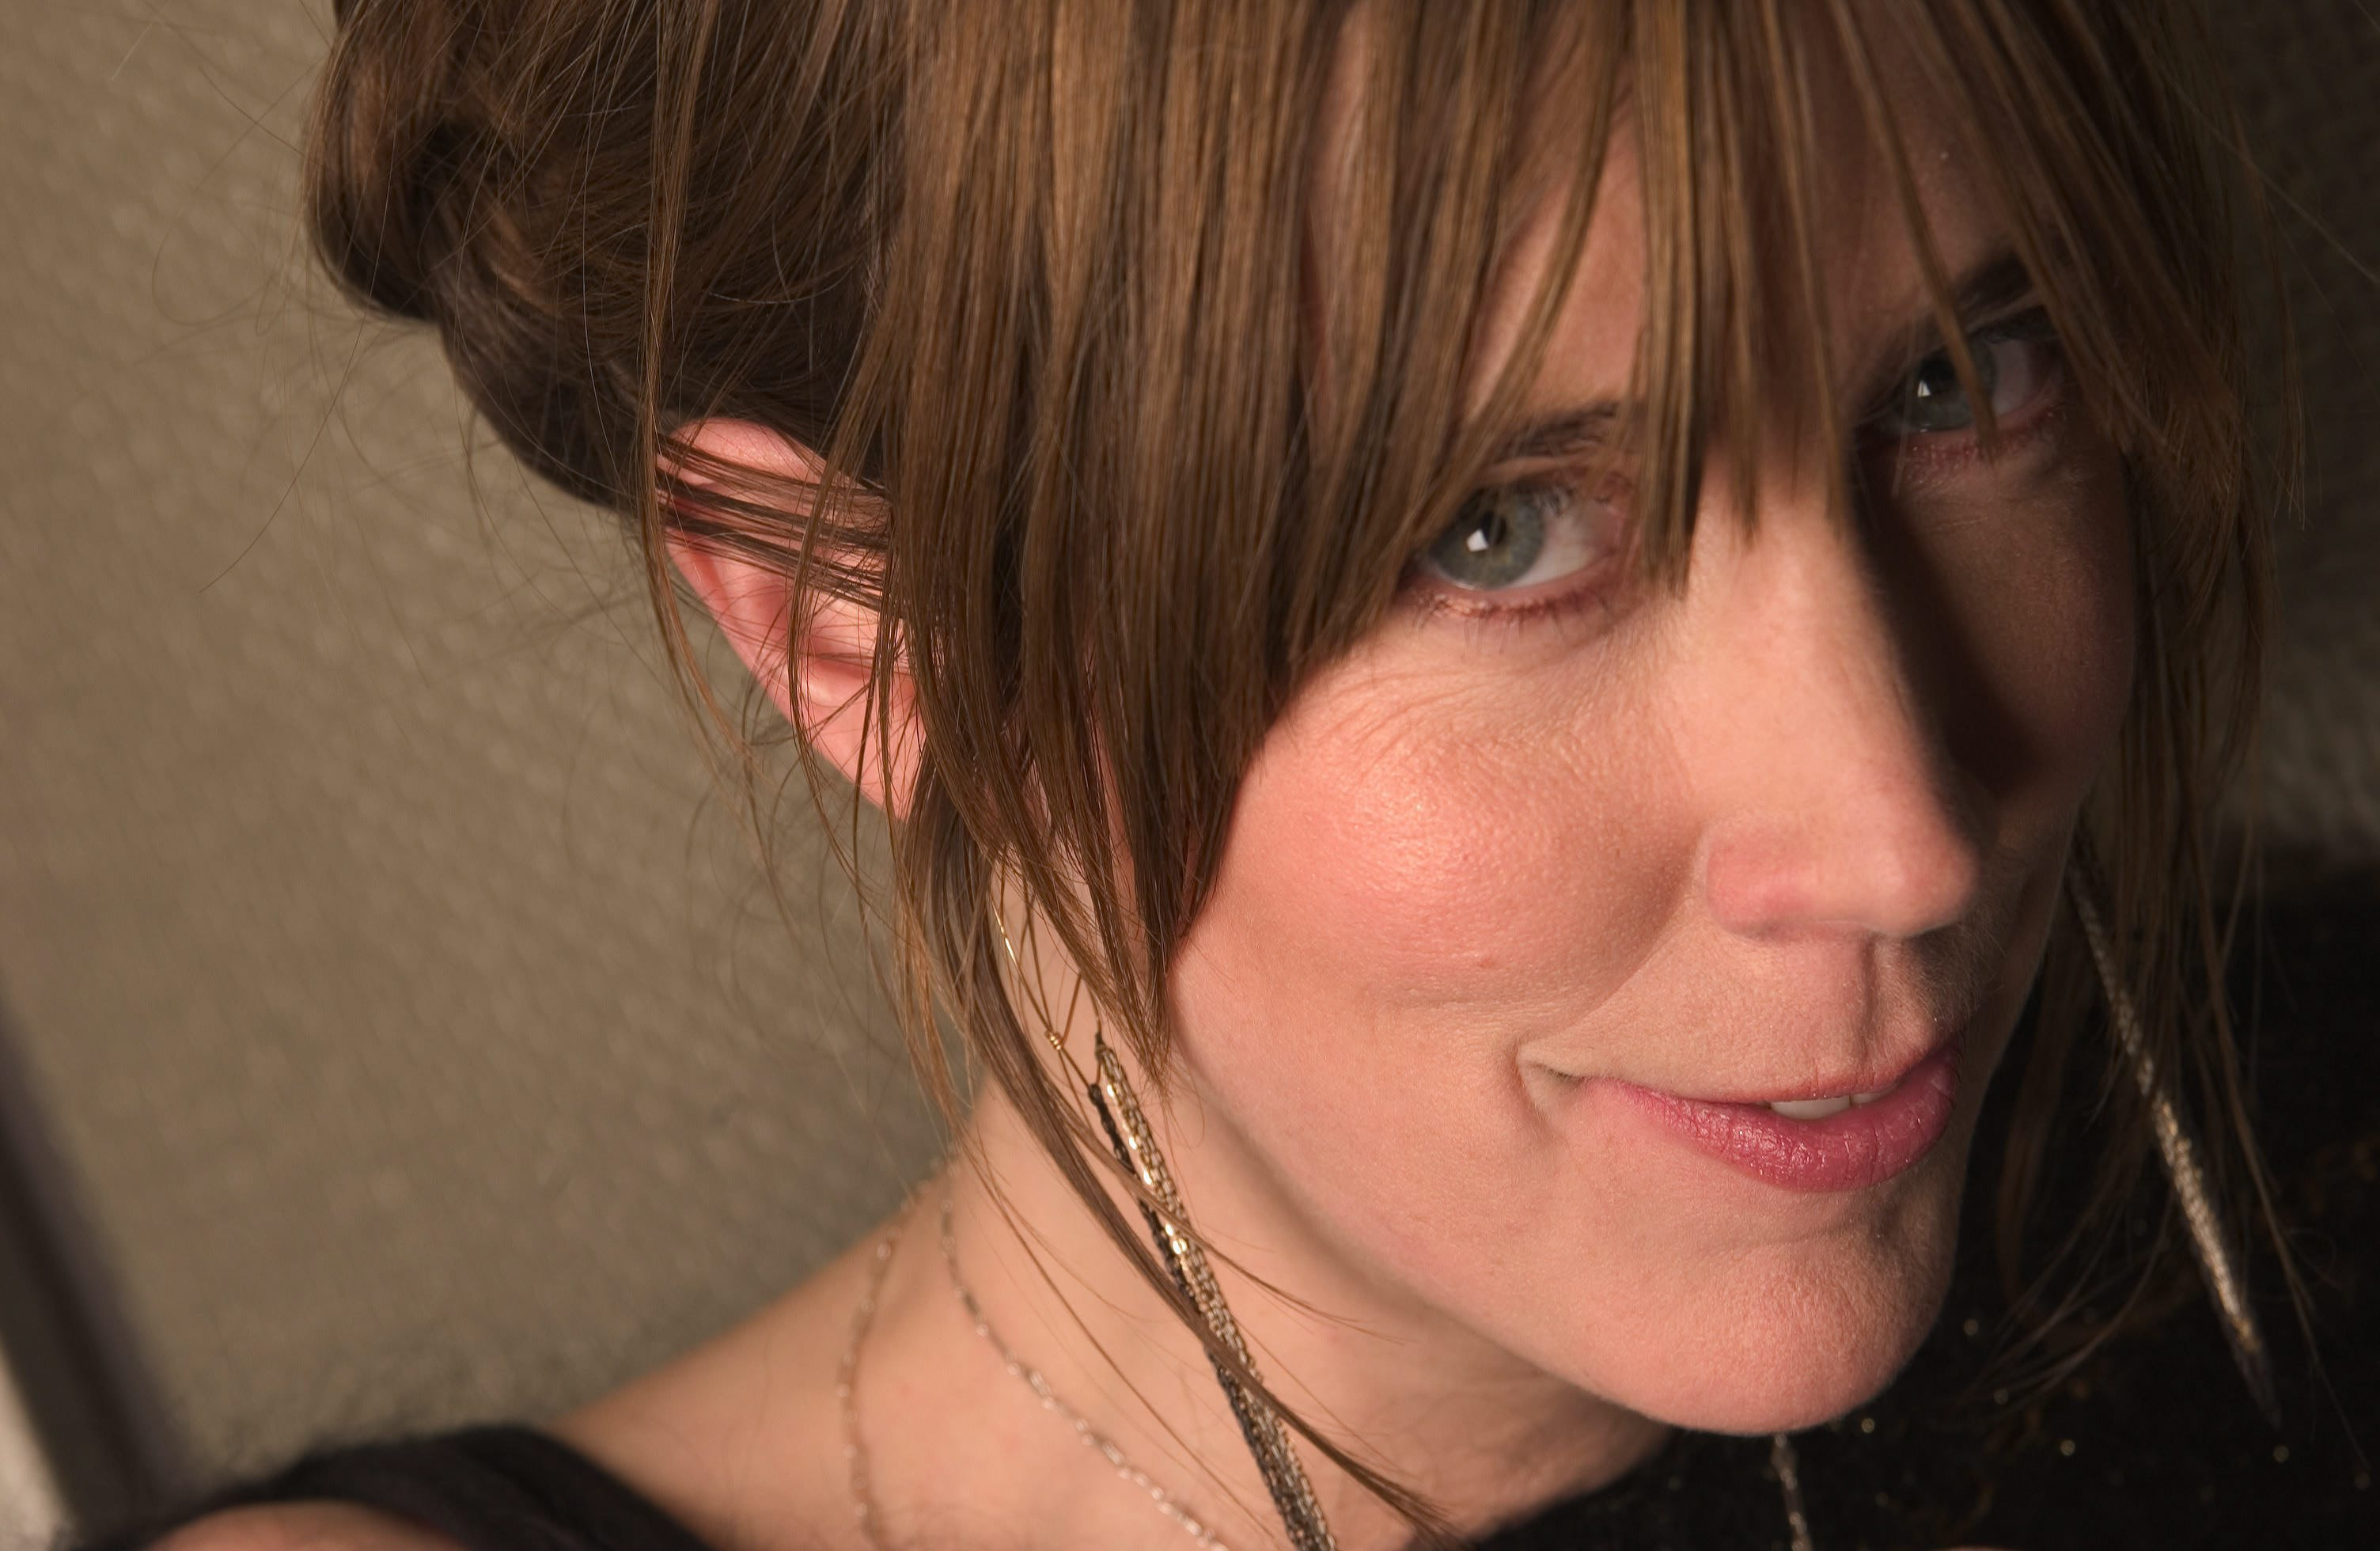 Listen to the new single from Beth Orton 'Moon' from her upcoming album